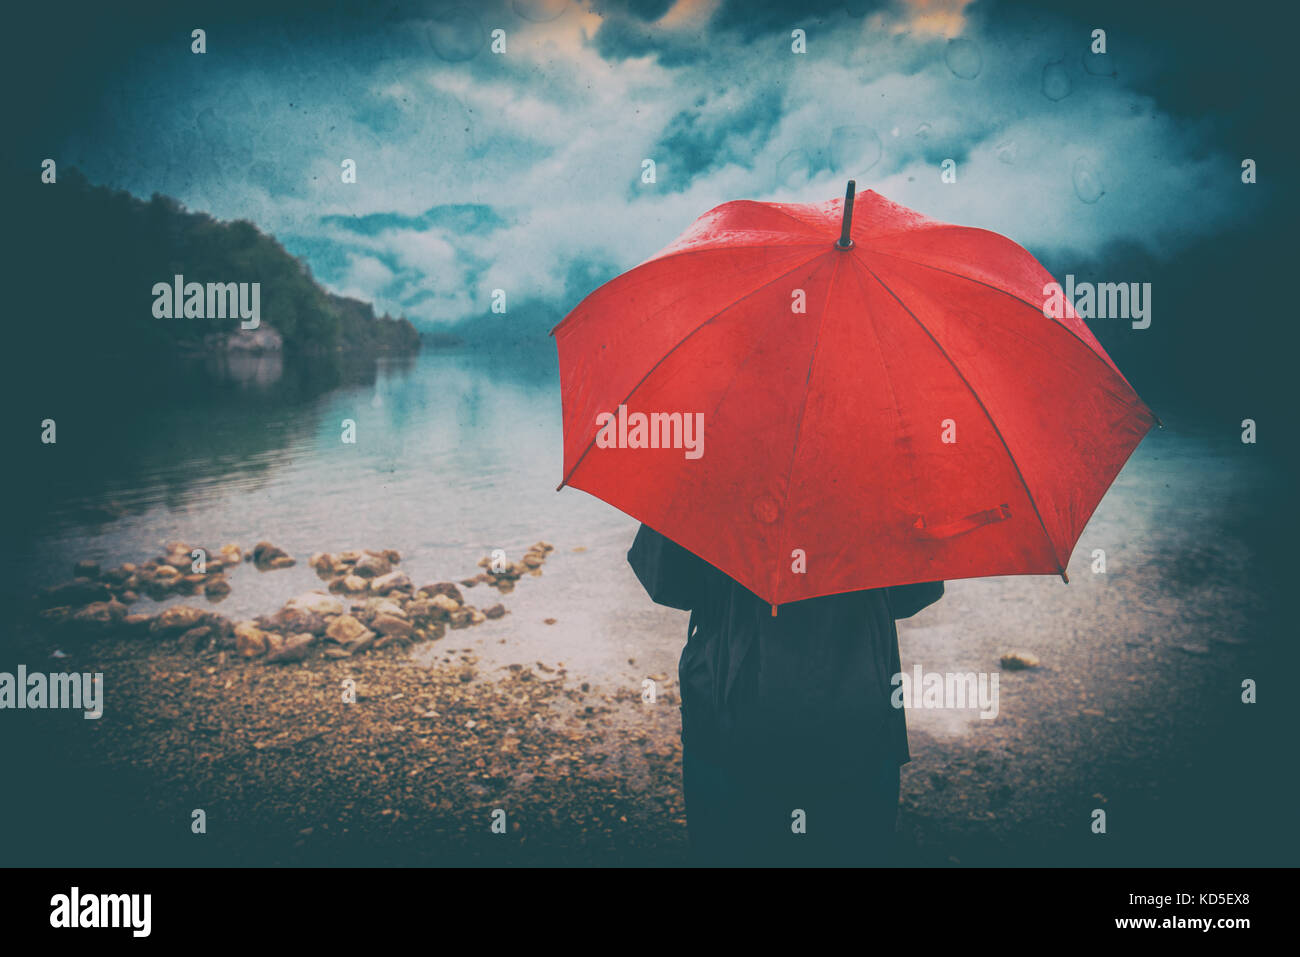 Woman with red umbrella contemplates on rain in front of a lake. Sad and lonely female person looking into distance. - Stock Image